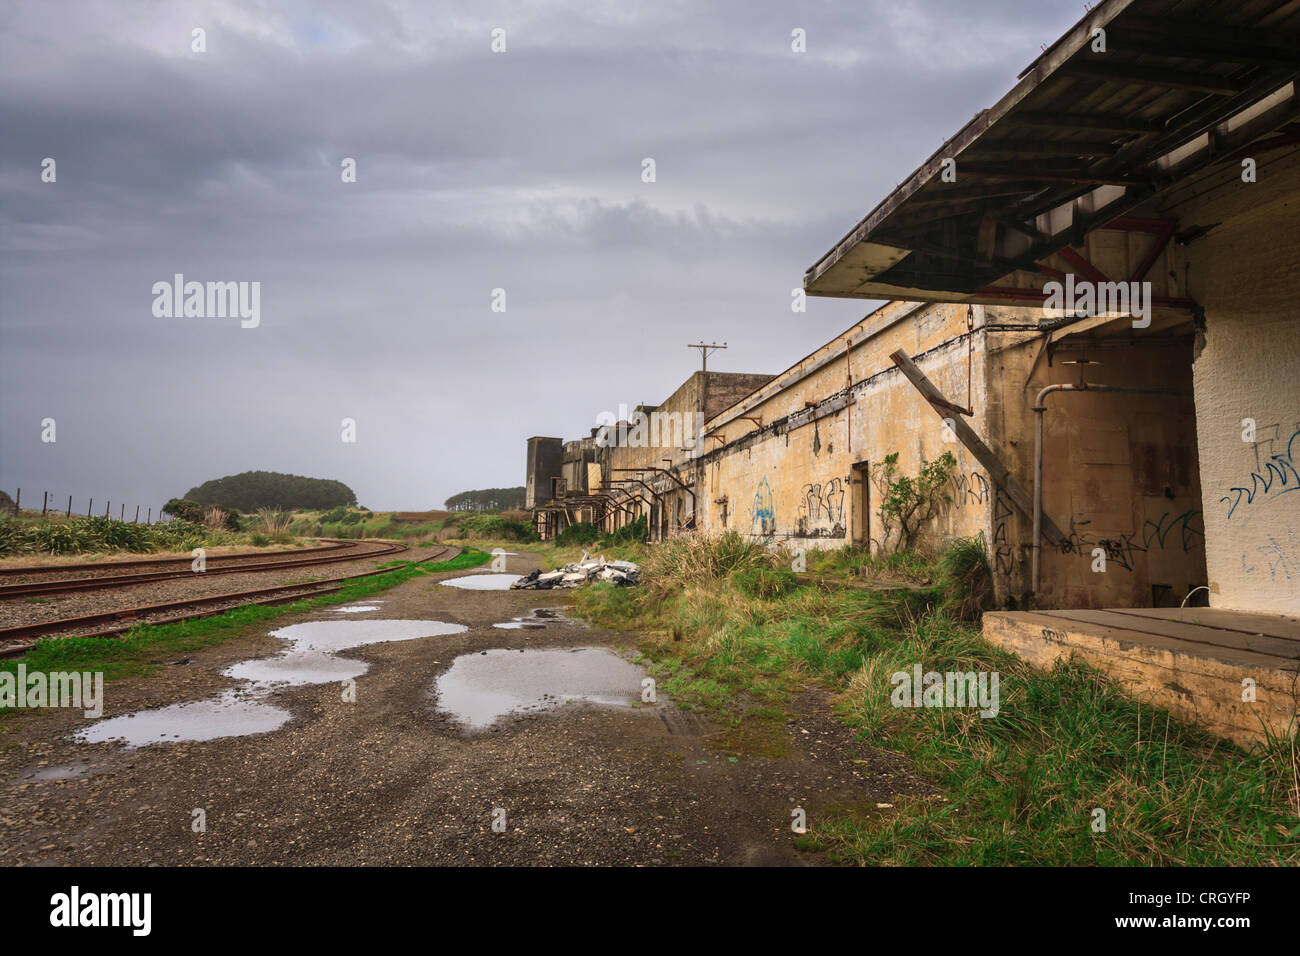 Abandoned factory on a wet day, gray sky, puddles on the ground, graffiti. Stock Photo